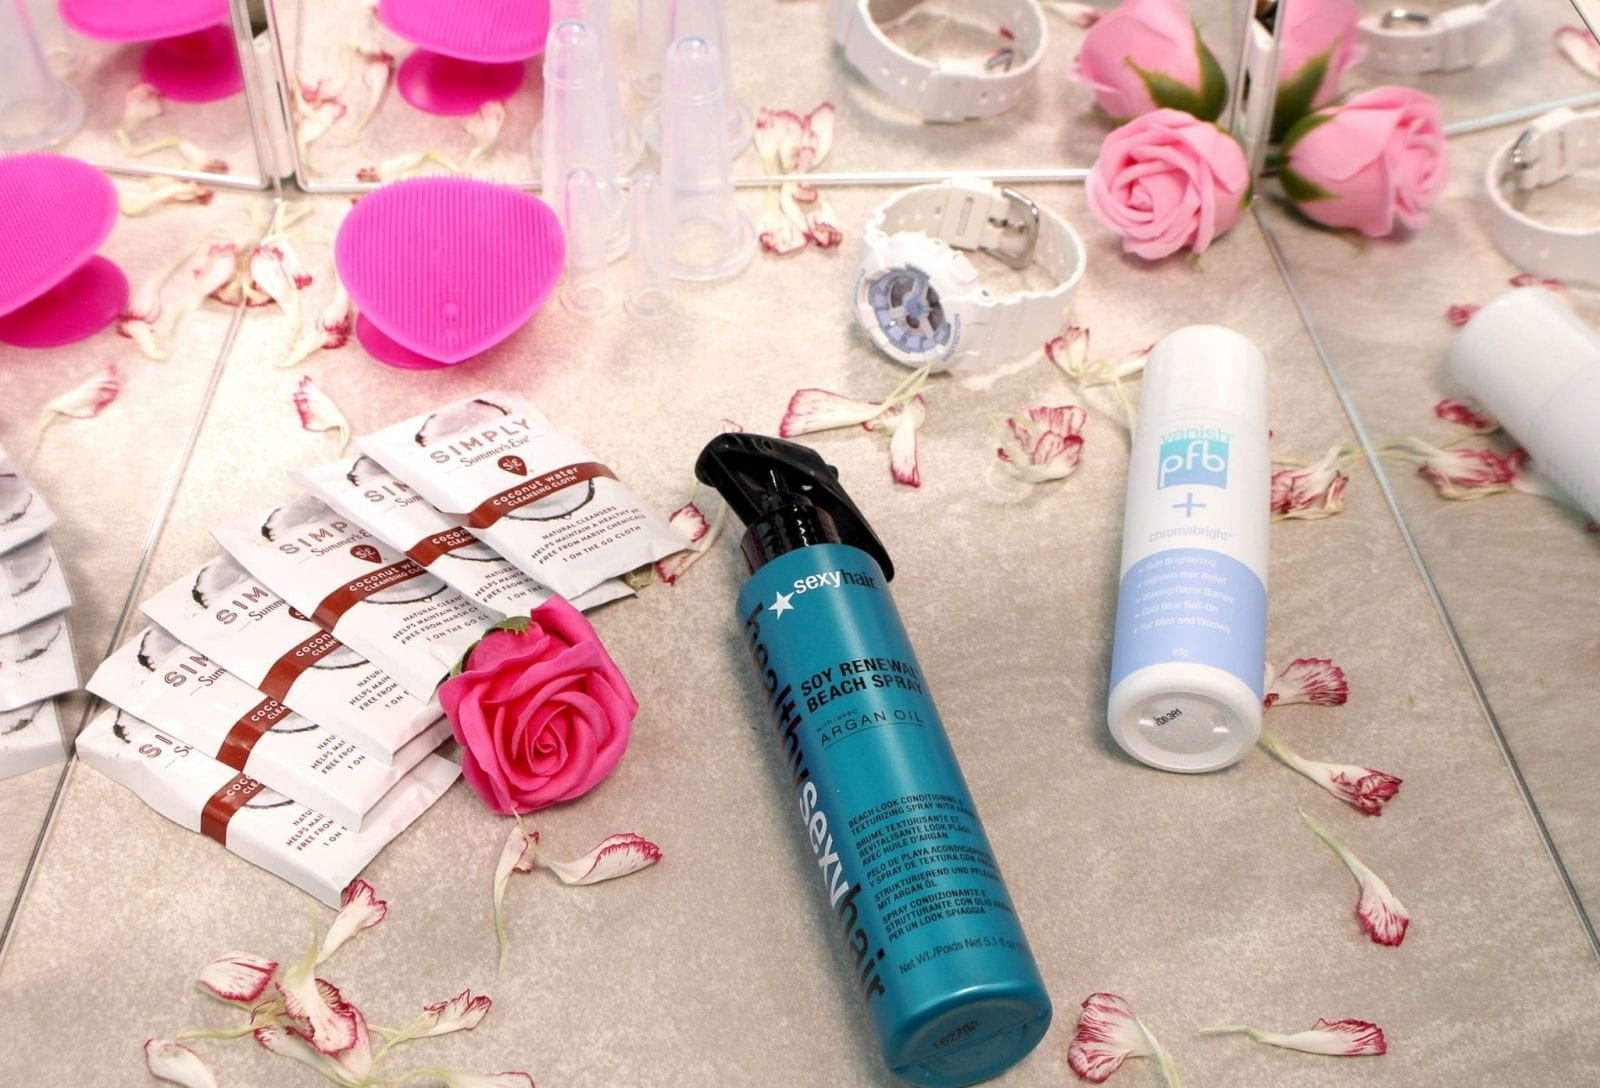 This is a flat lay featuring all the products in the Hot Weather Beauty Hacks Babbleboxx.